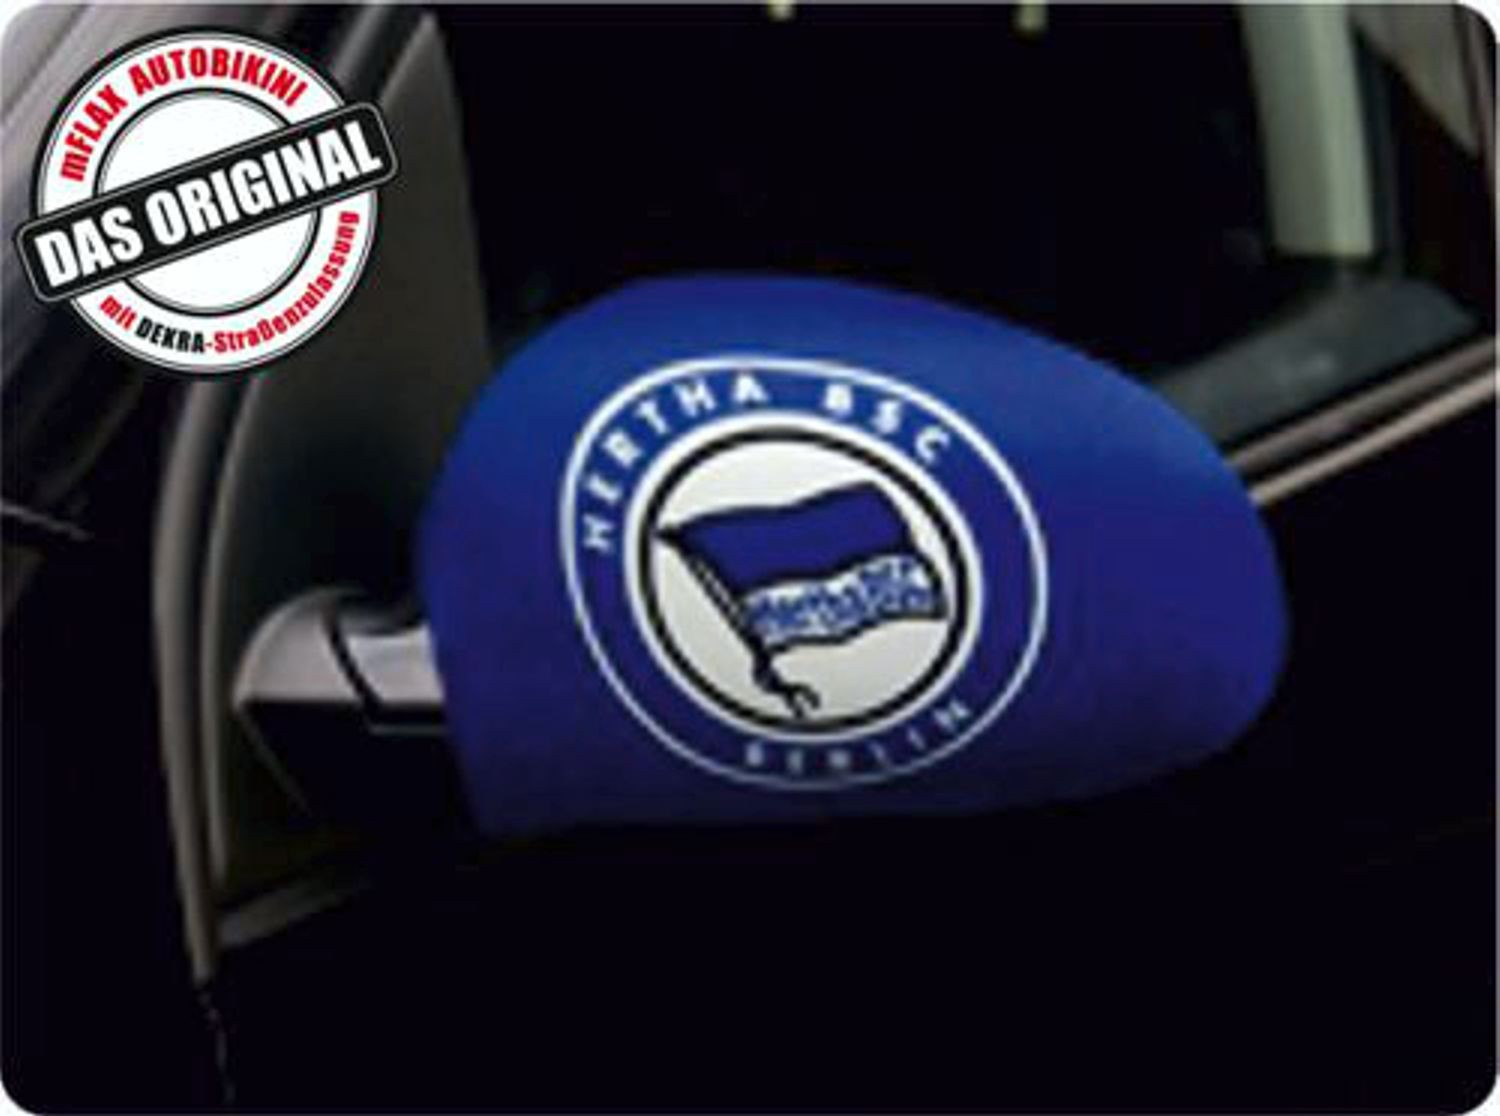 Car-Bikini set of 2 german football league Herta BSC Berlin – Bild 1